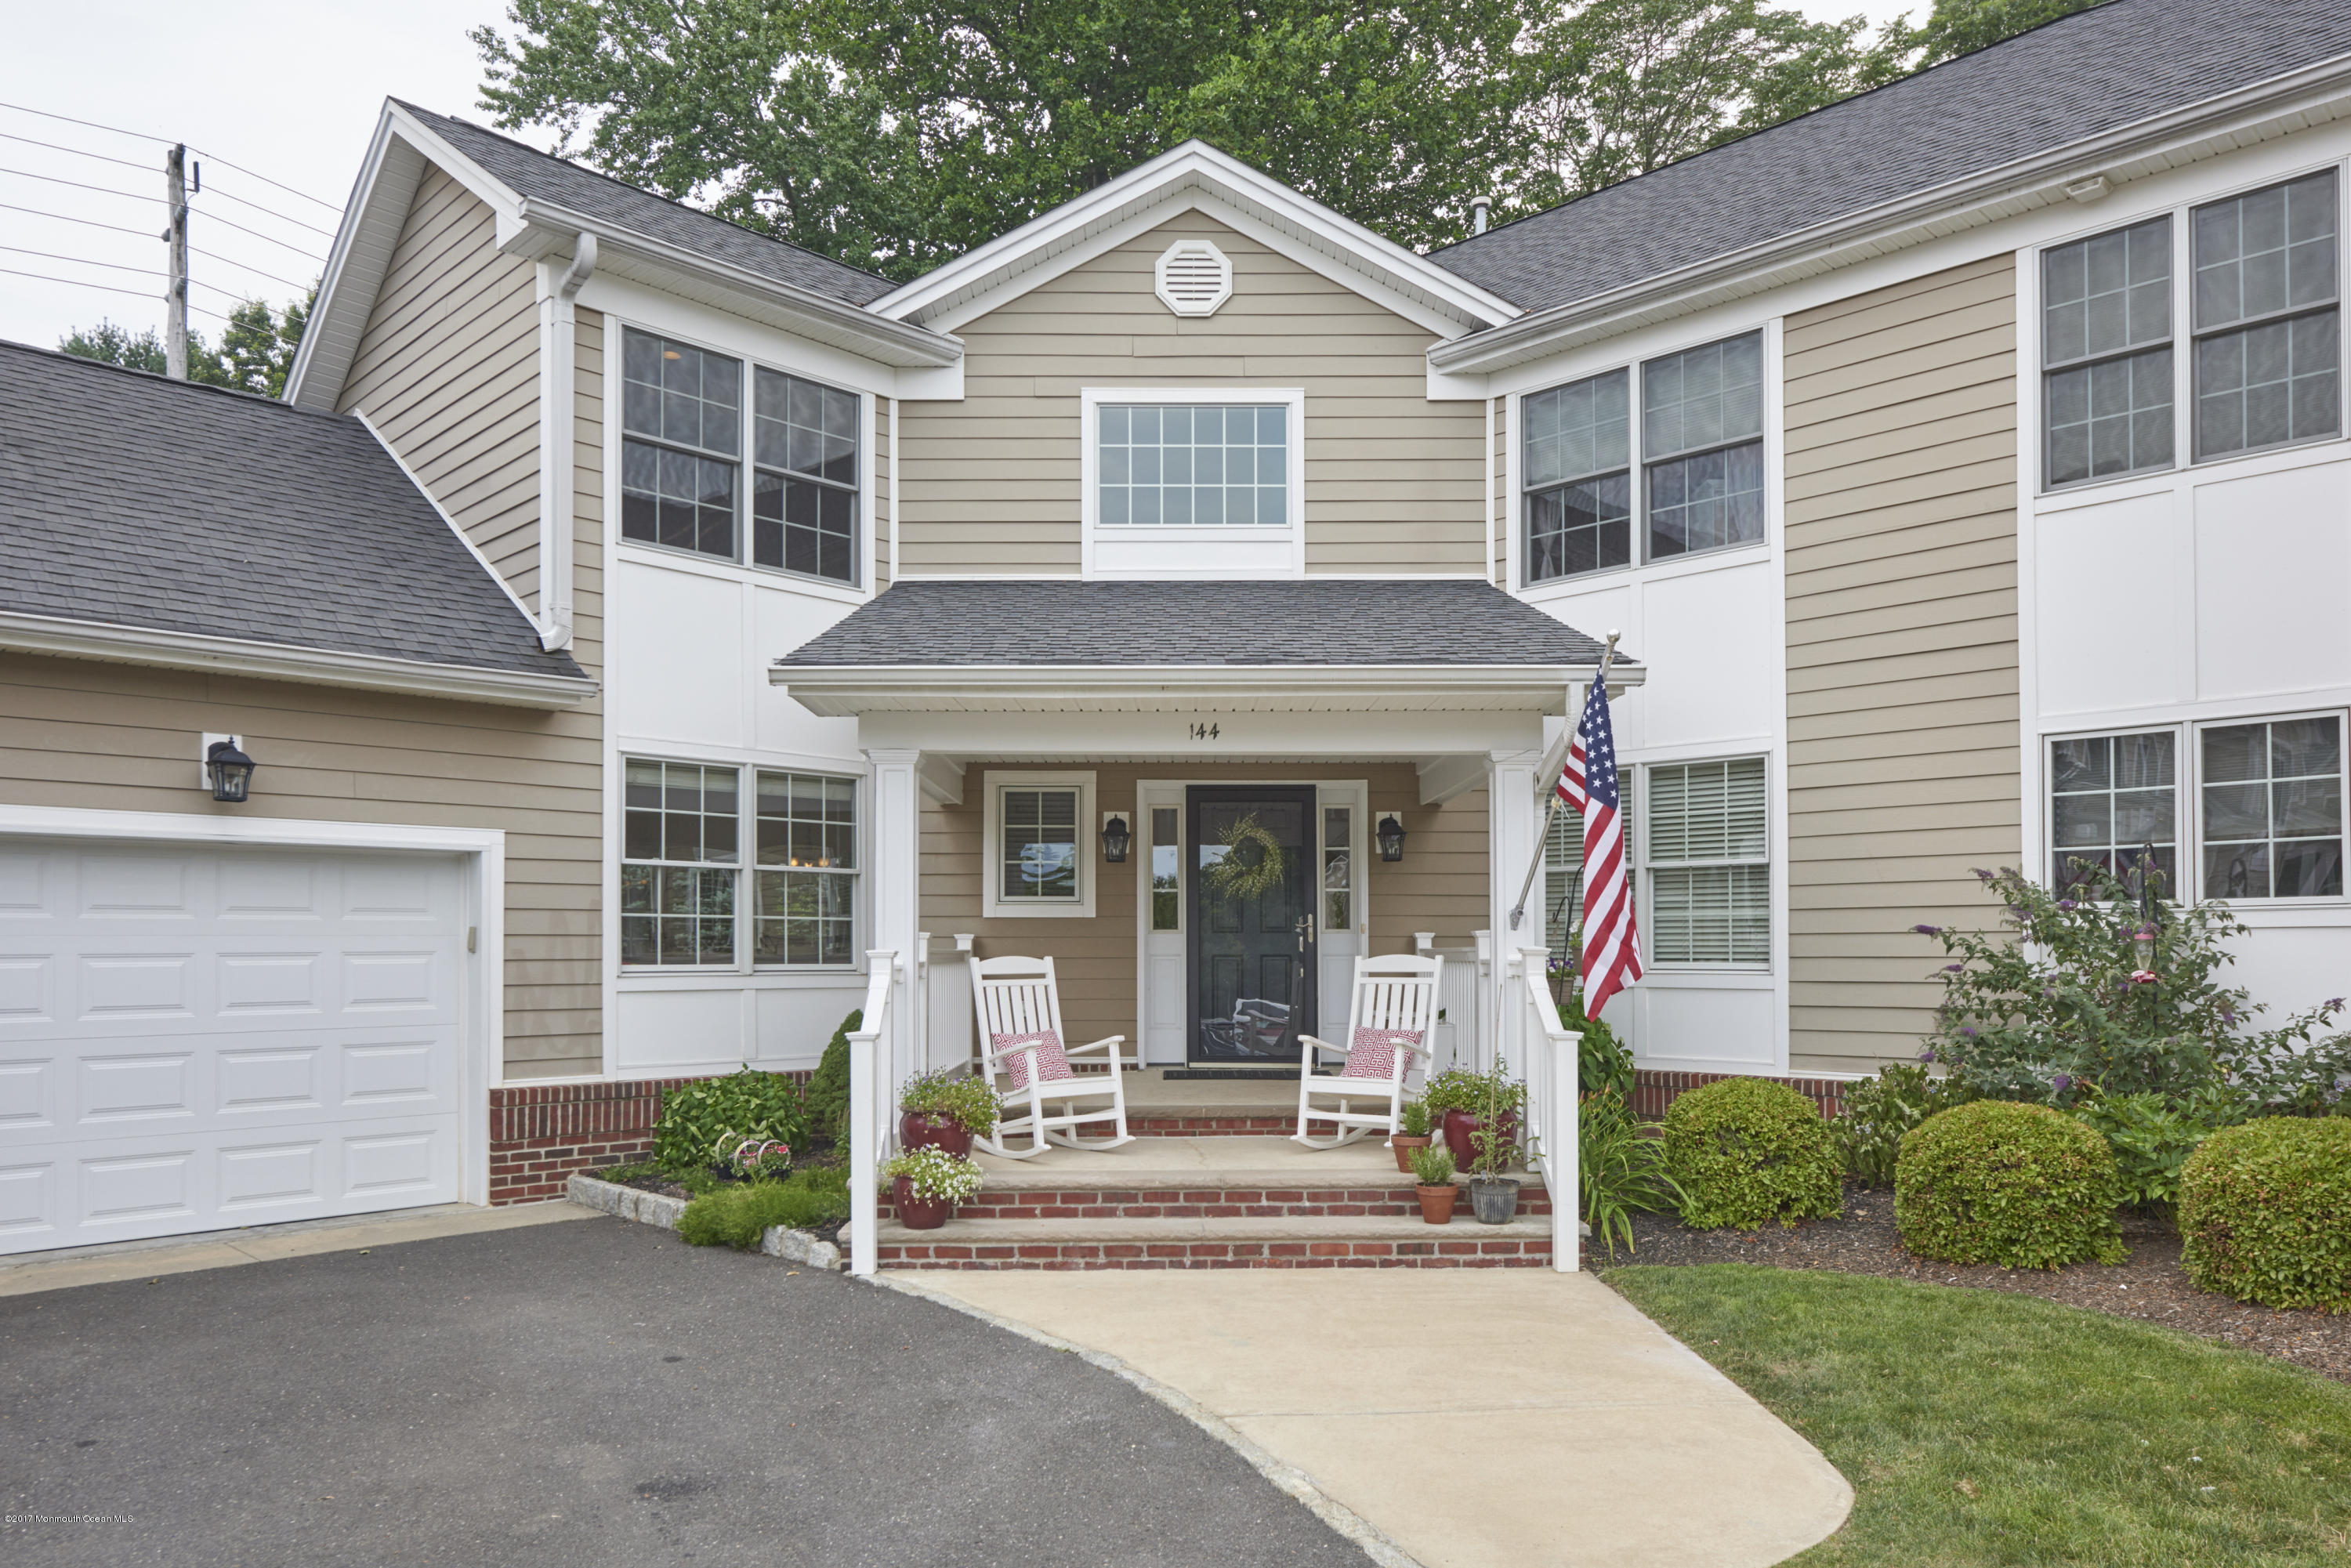 144 BIRCH AVENUE, LITTLE SILVER, NJ 07739